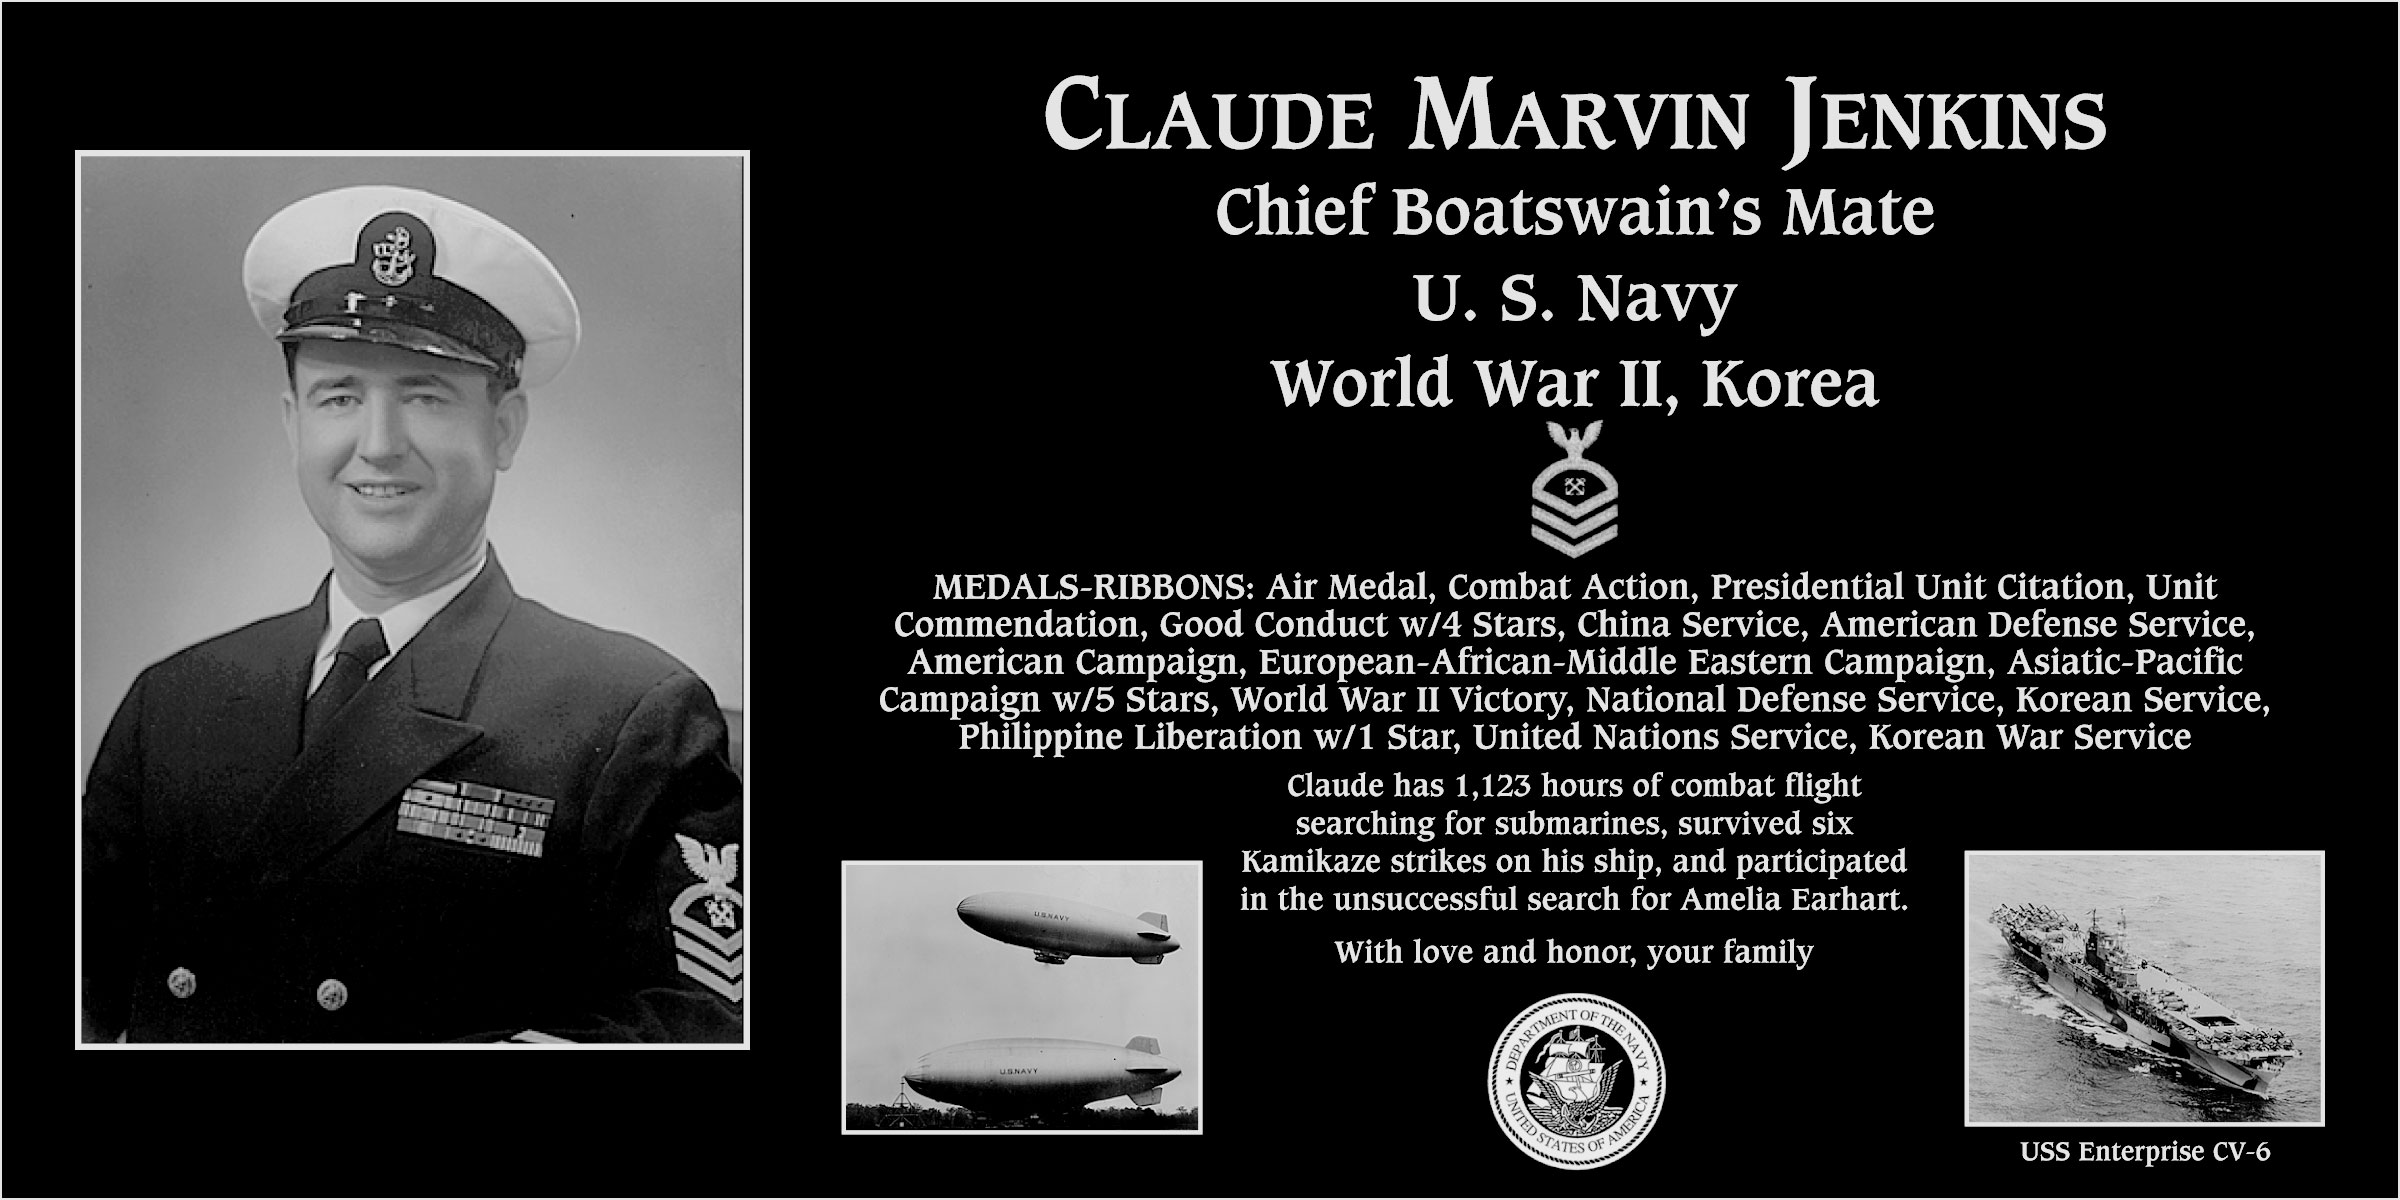 Claude Marvin Jenkins